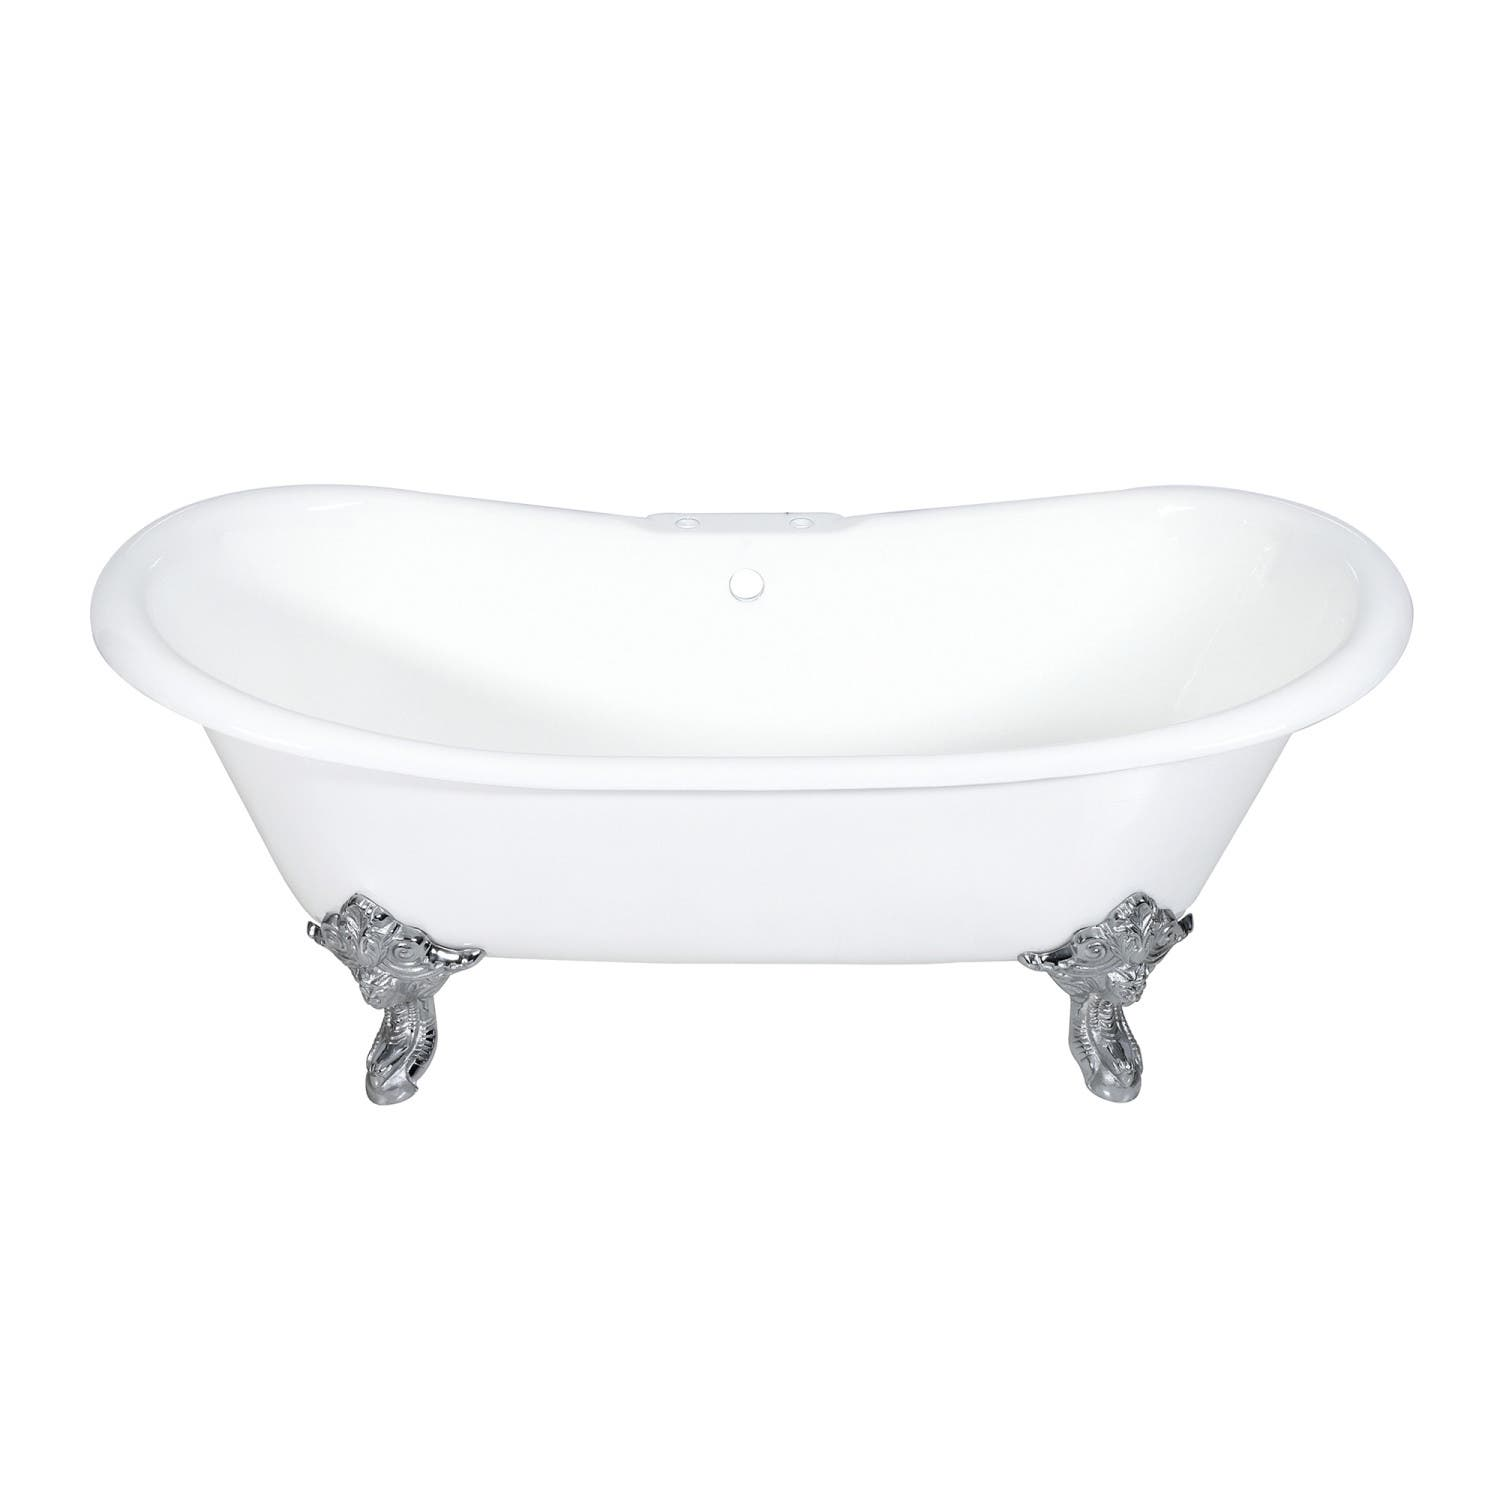 Aqua Eden VCT7DS7231NL1 72-Inch Cast Iron Double Slipper Clawfoot Tub with 7-Inch Faucet Drillings, White/Polished Chrome